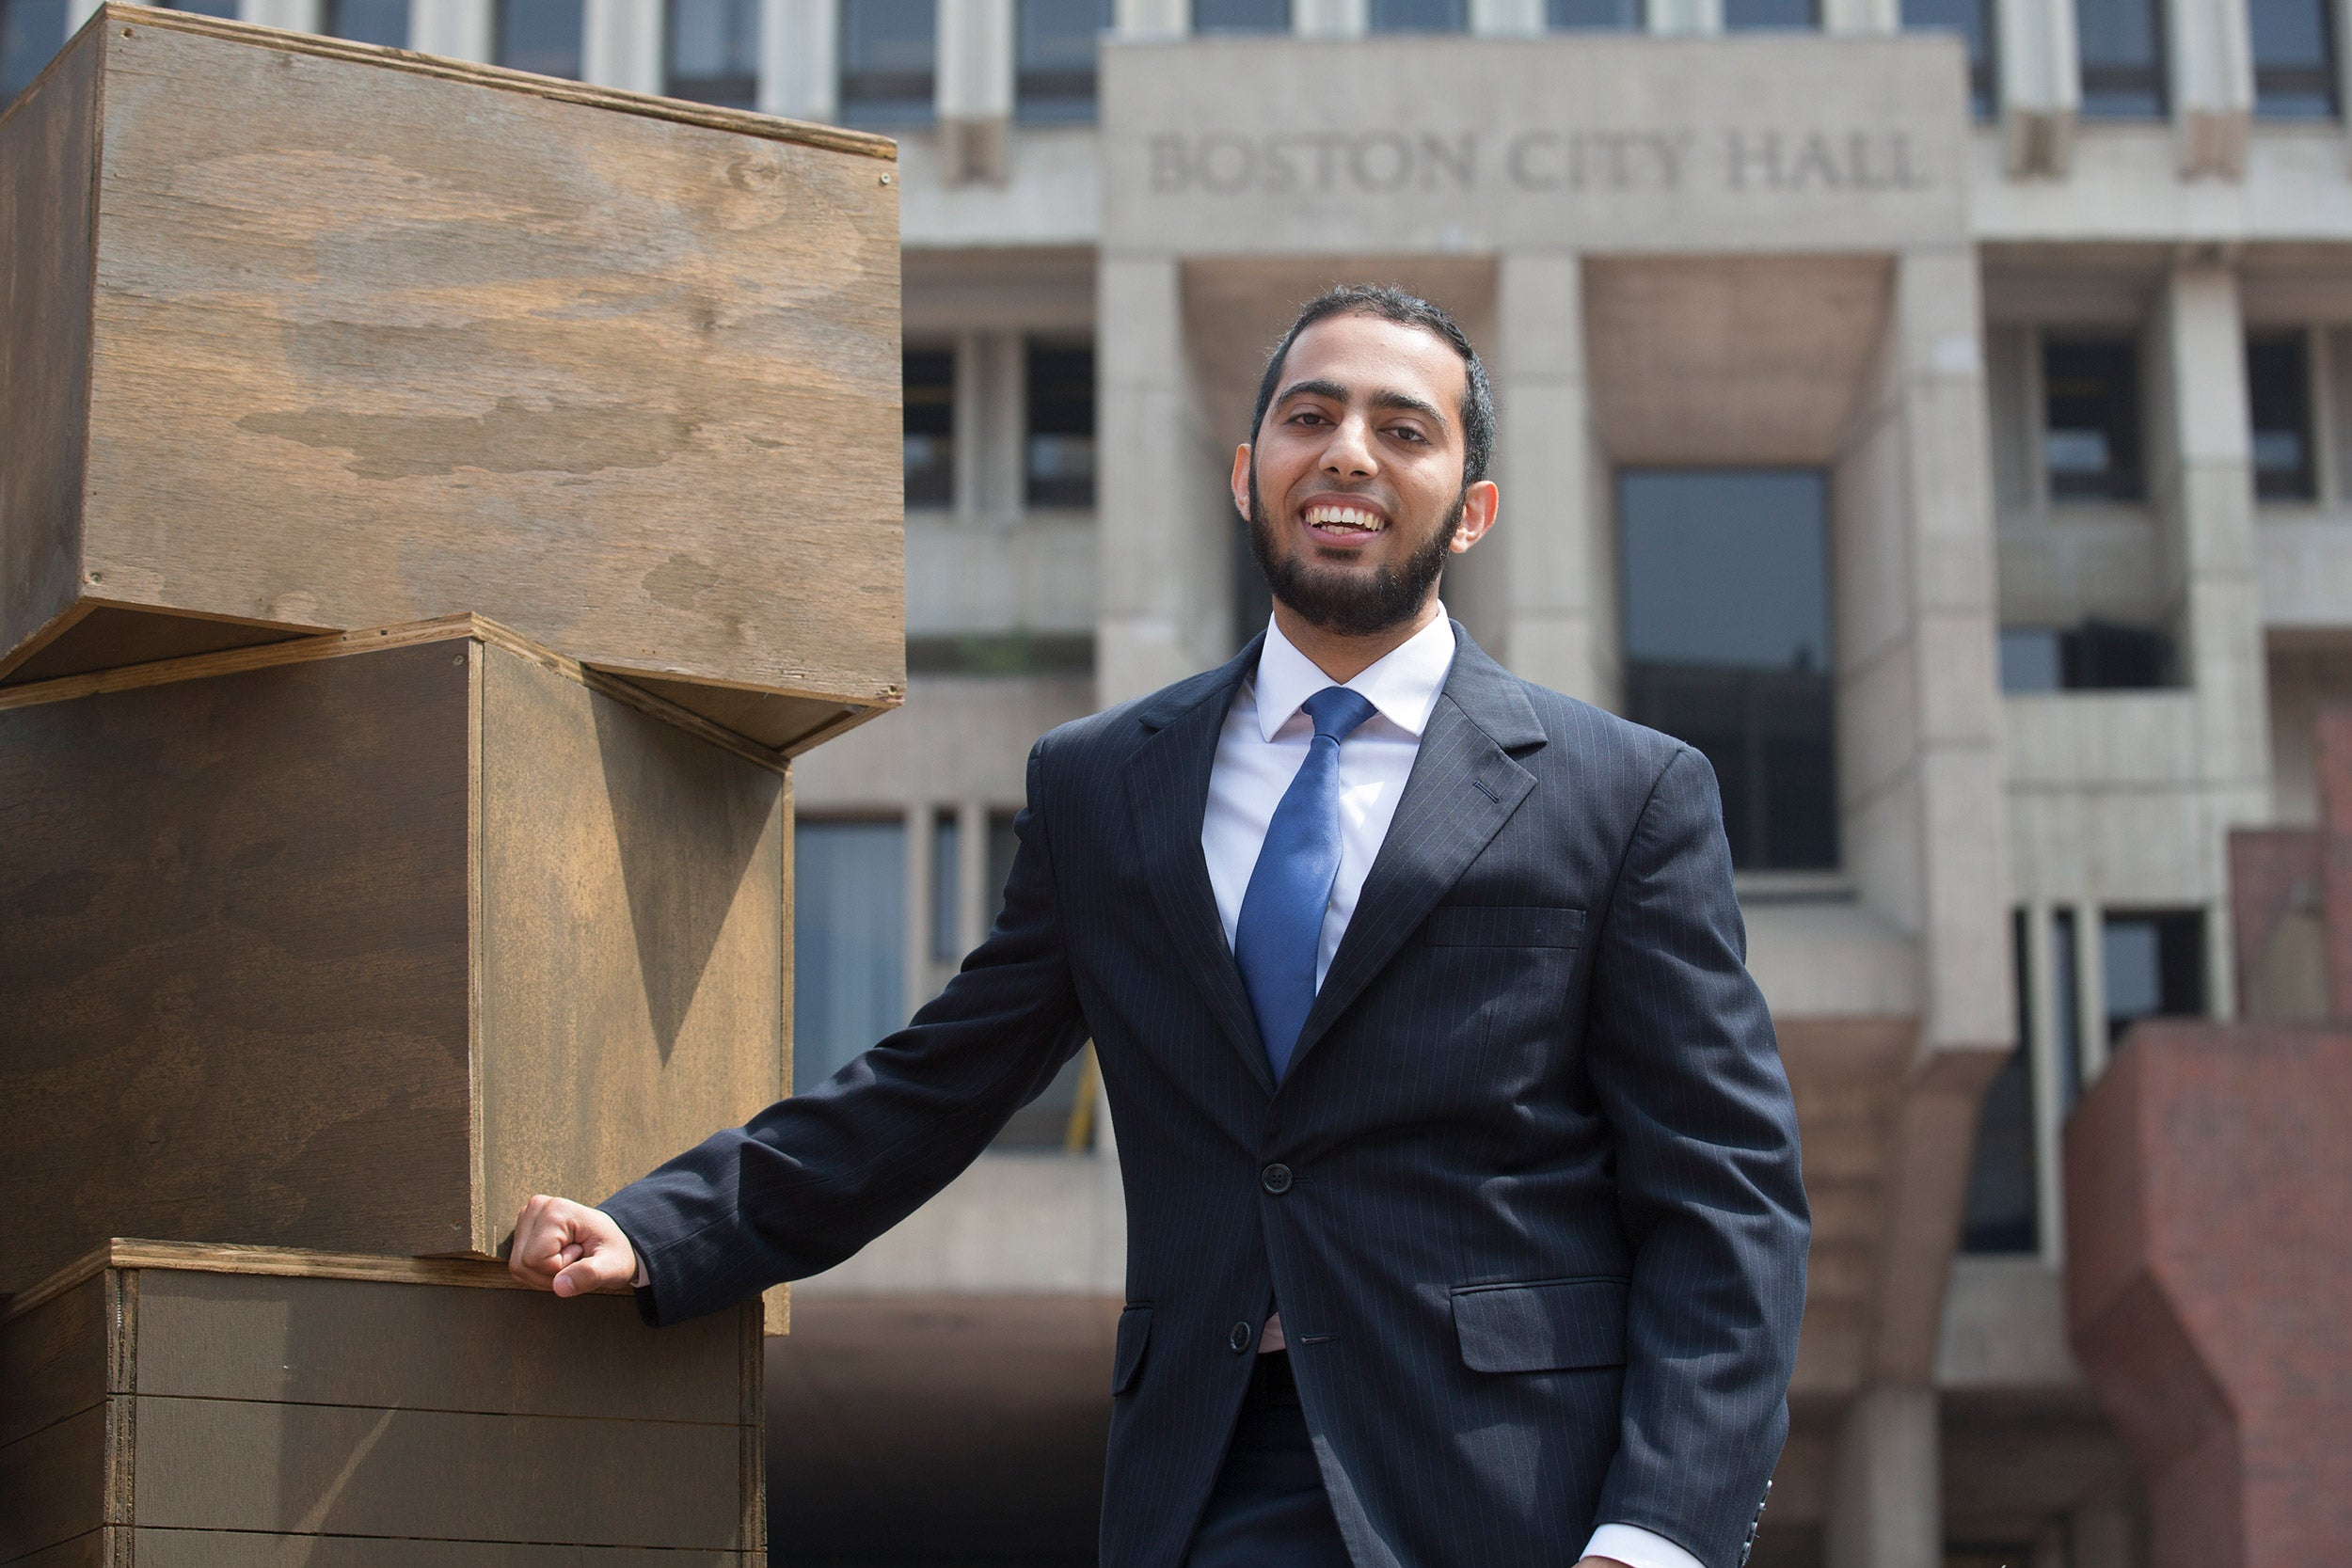 """""""It became important to me to look at how I could create meaningful community support ... especially [for] those who are minorities and those of color who are sometimes falling through the cracks in our system,"""" said Omar Khoshafa '17, a Harvard Presidential City of Boston Fellowship recipient."""